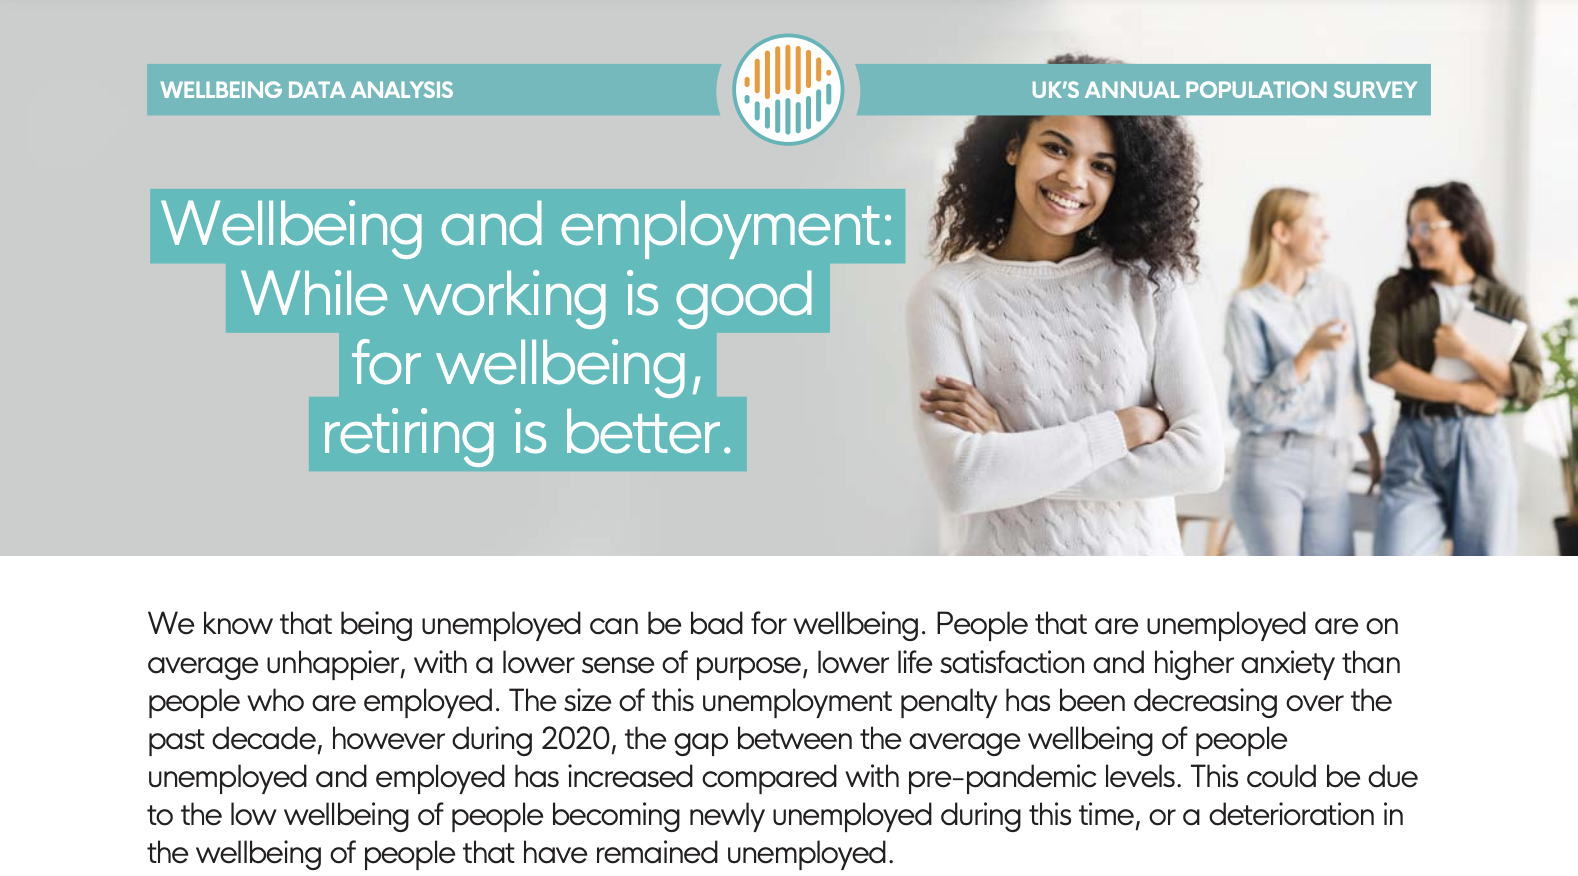 Wellbeing and employment: While working is good for wellbeing, retiring is better